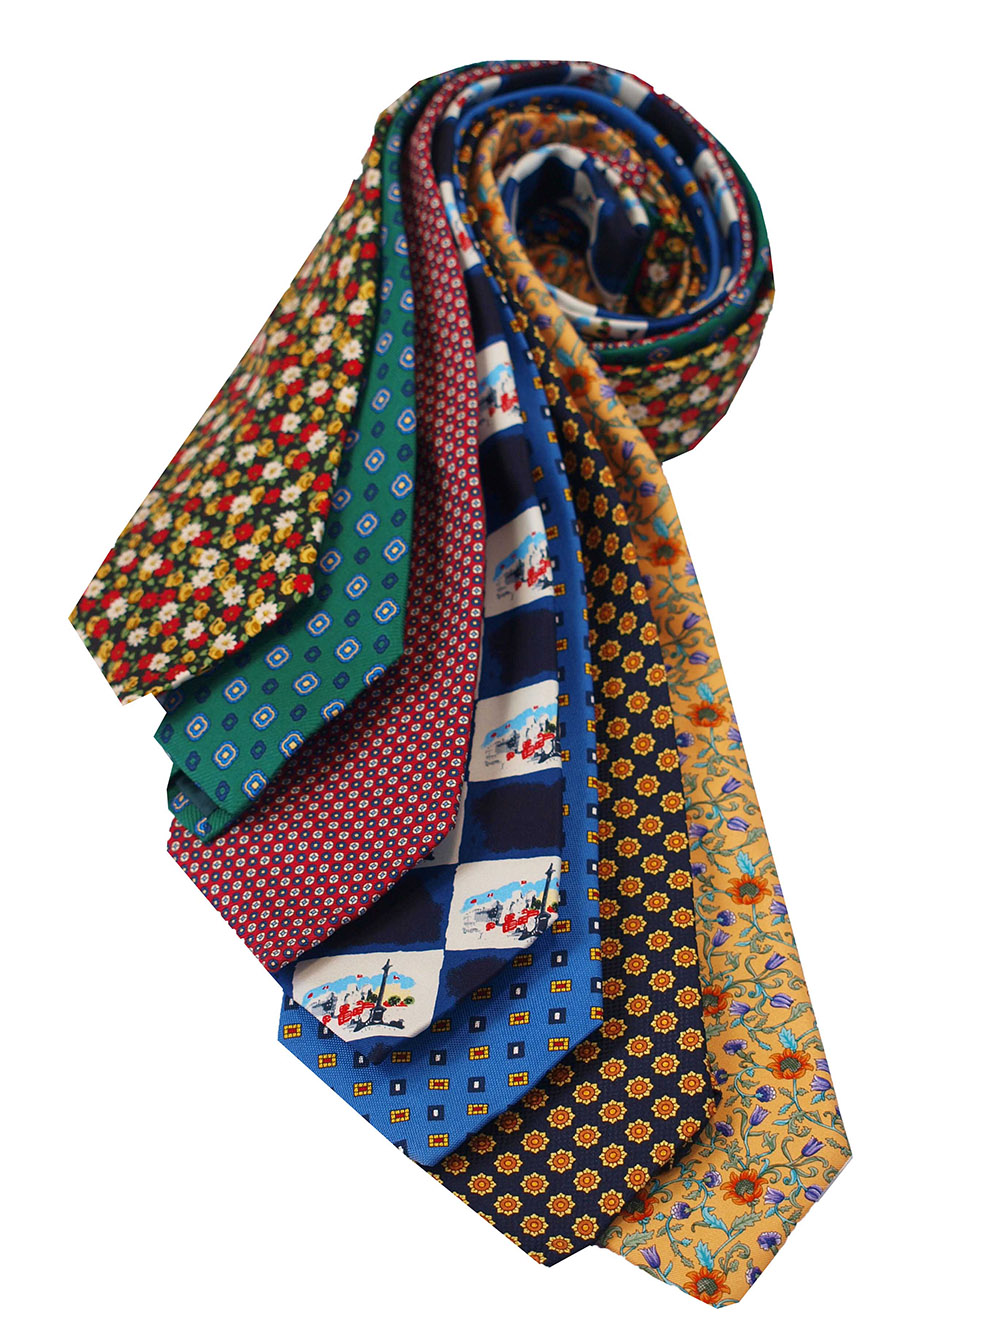 Cavenagh of London 7Piece 100% Pure Silk Ties Made in UK (116D)RRP£139.99